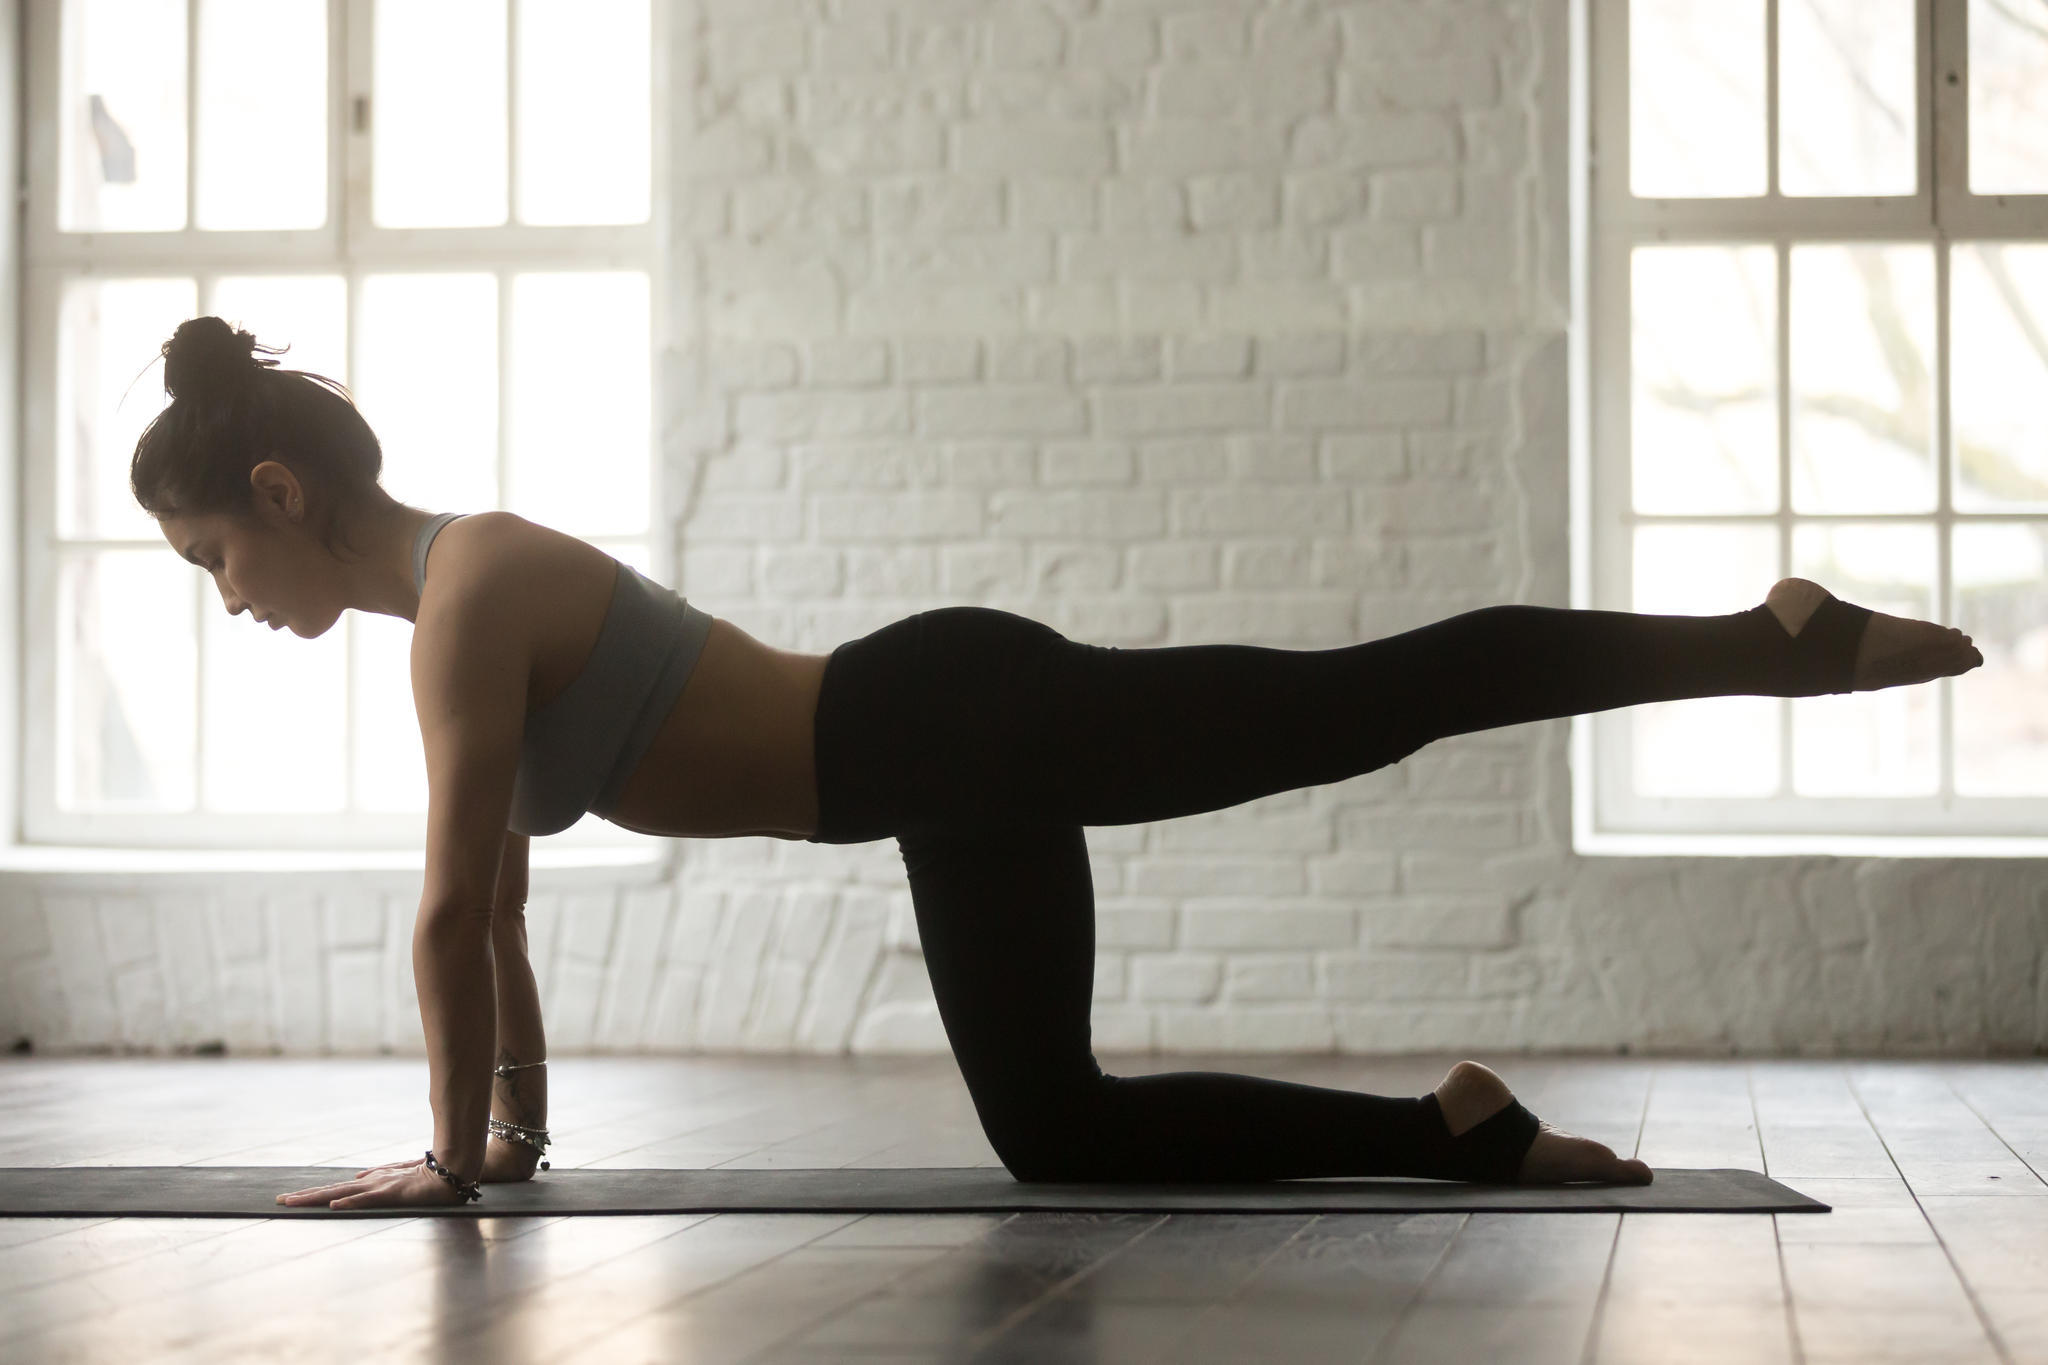 15-Minuten-Workout: Vierfüßler mit Twist